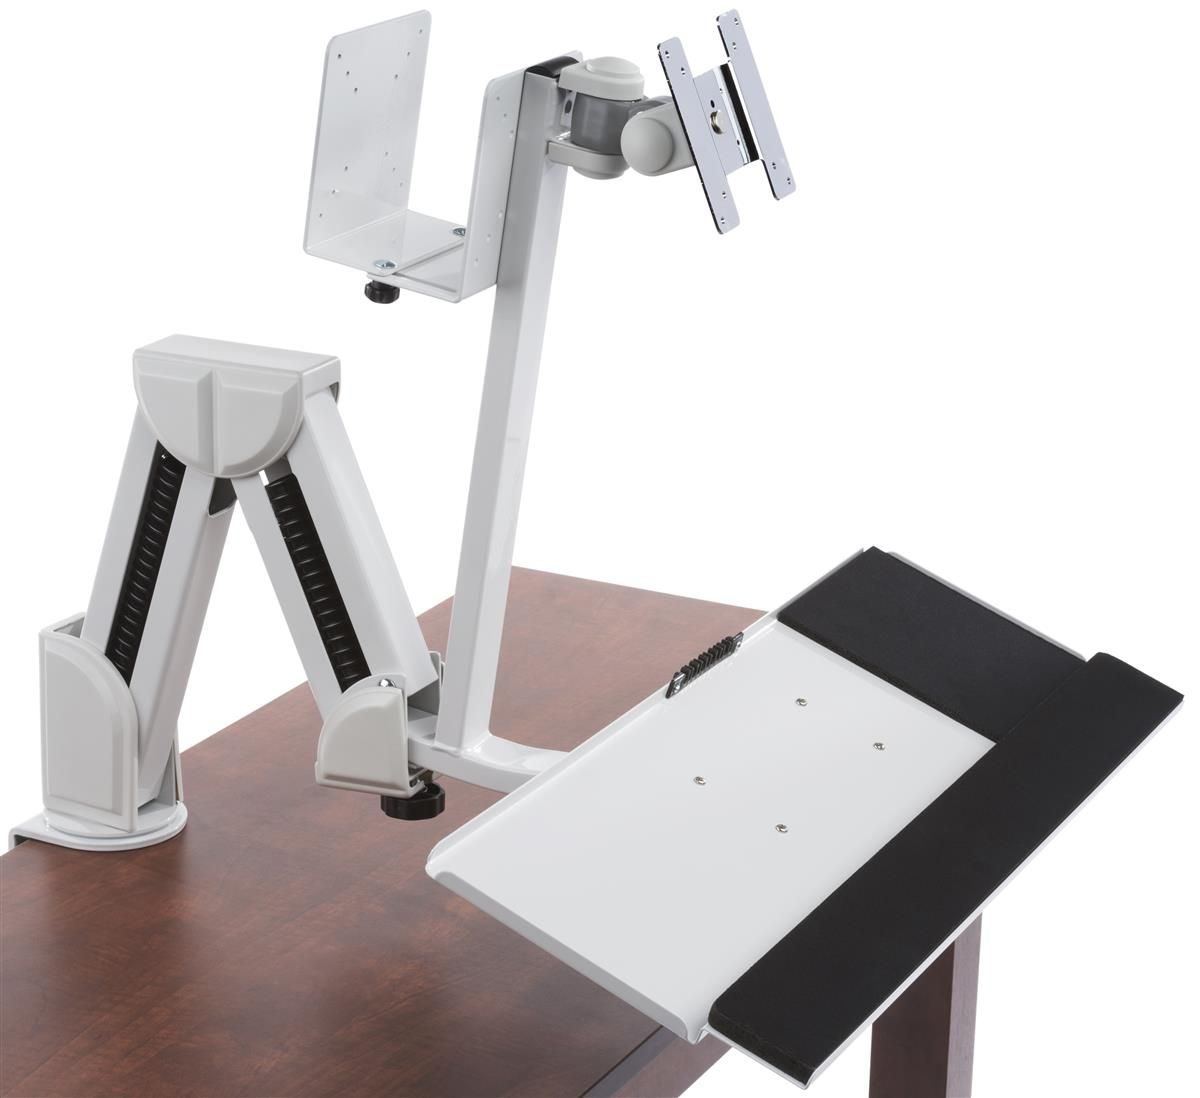 Description of workrite willow monitor arm willow is specifically - Workstation For Wall Or Counter Fits 14 27 Monitors Cpu